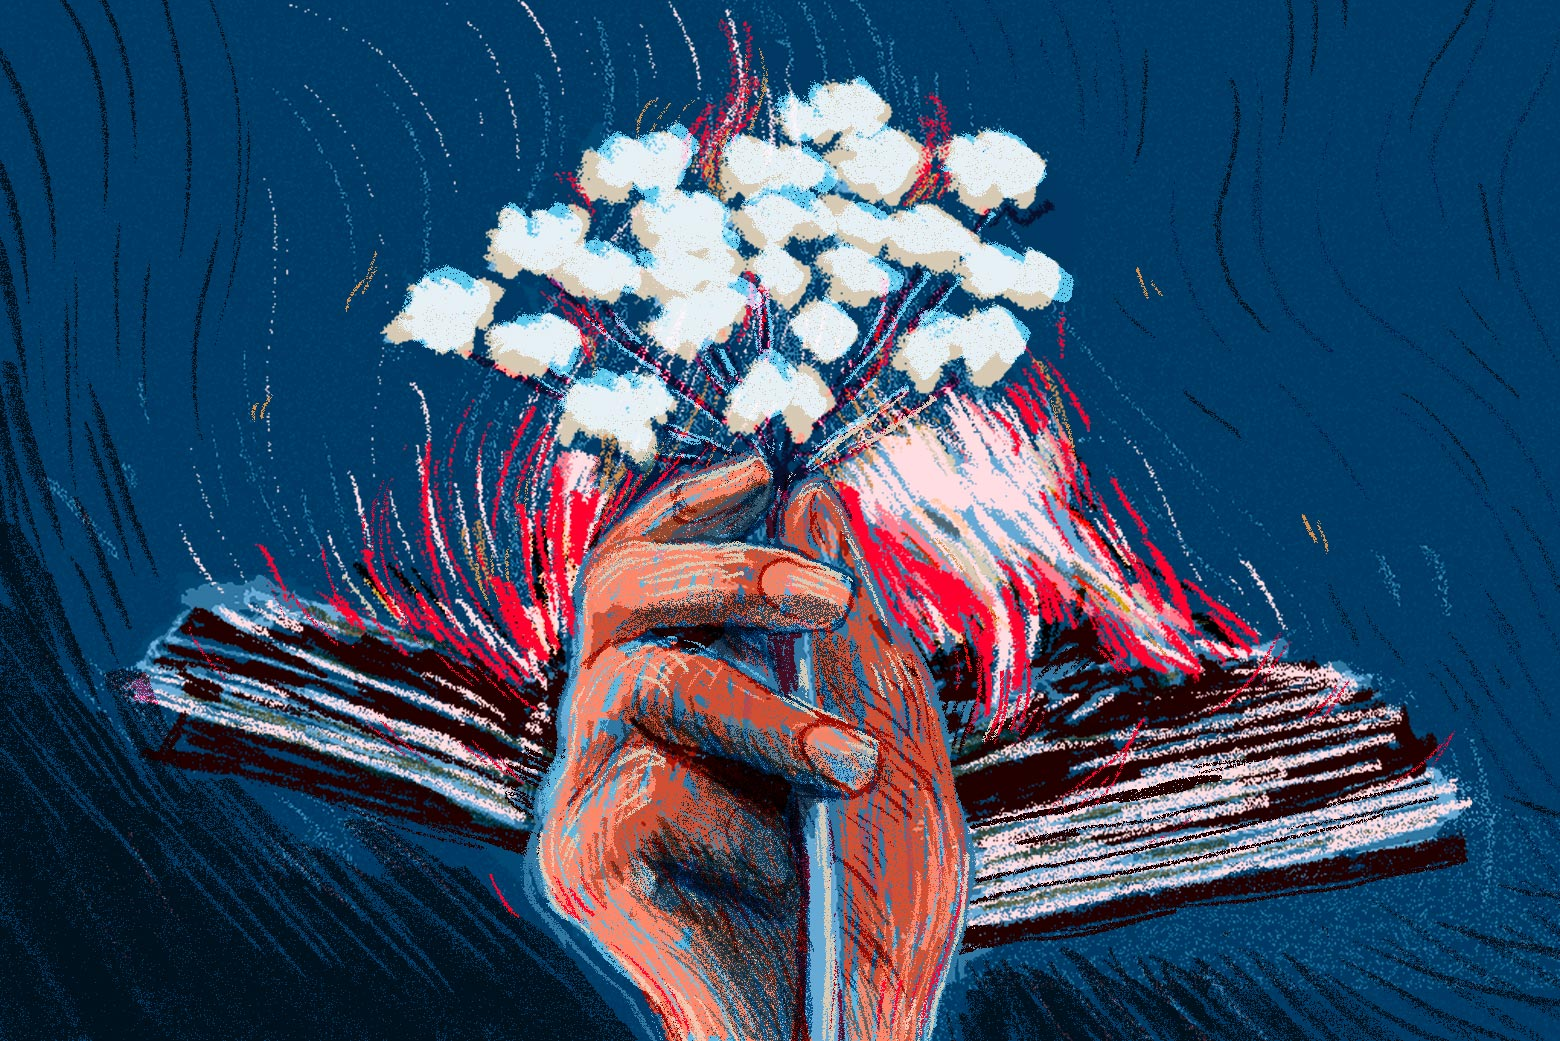 Hand holding a sprig of cow parsnip, in front of a burning book.